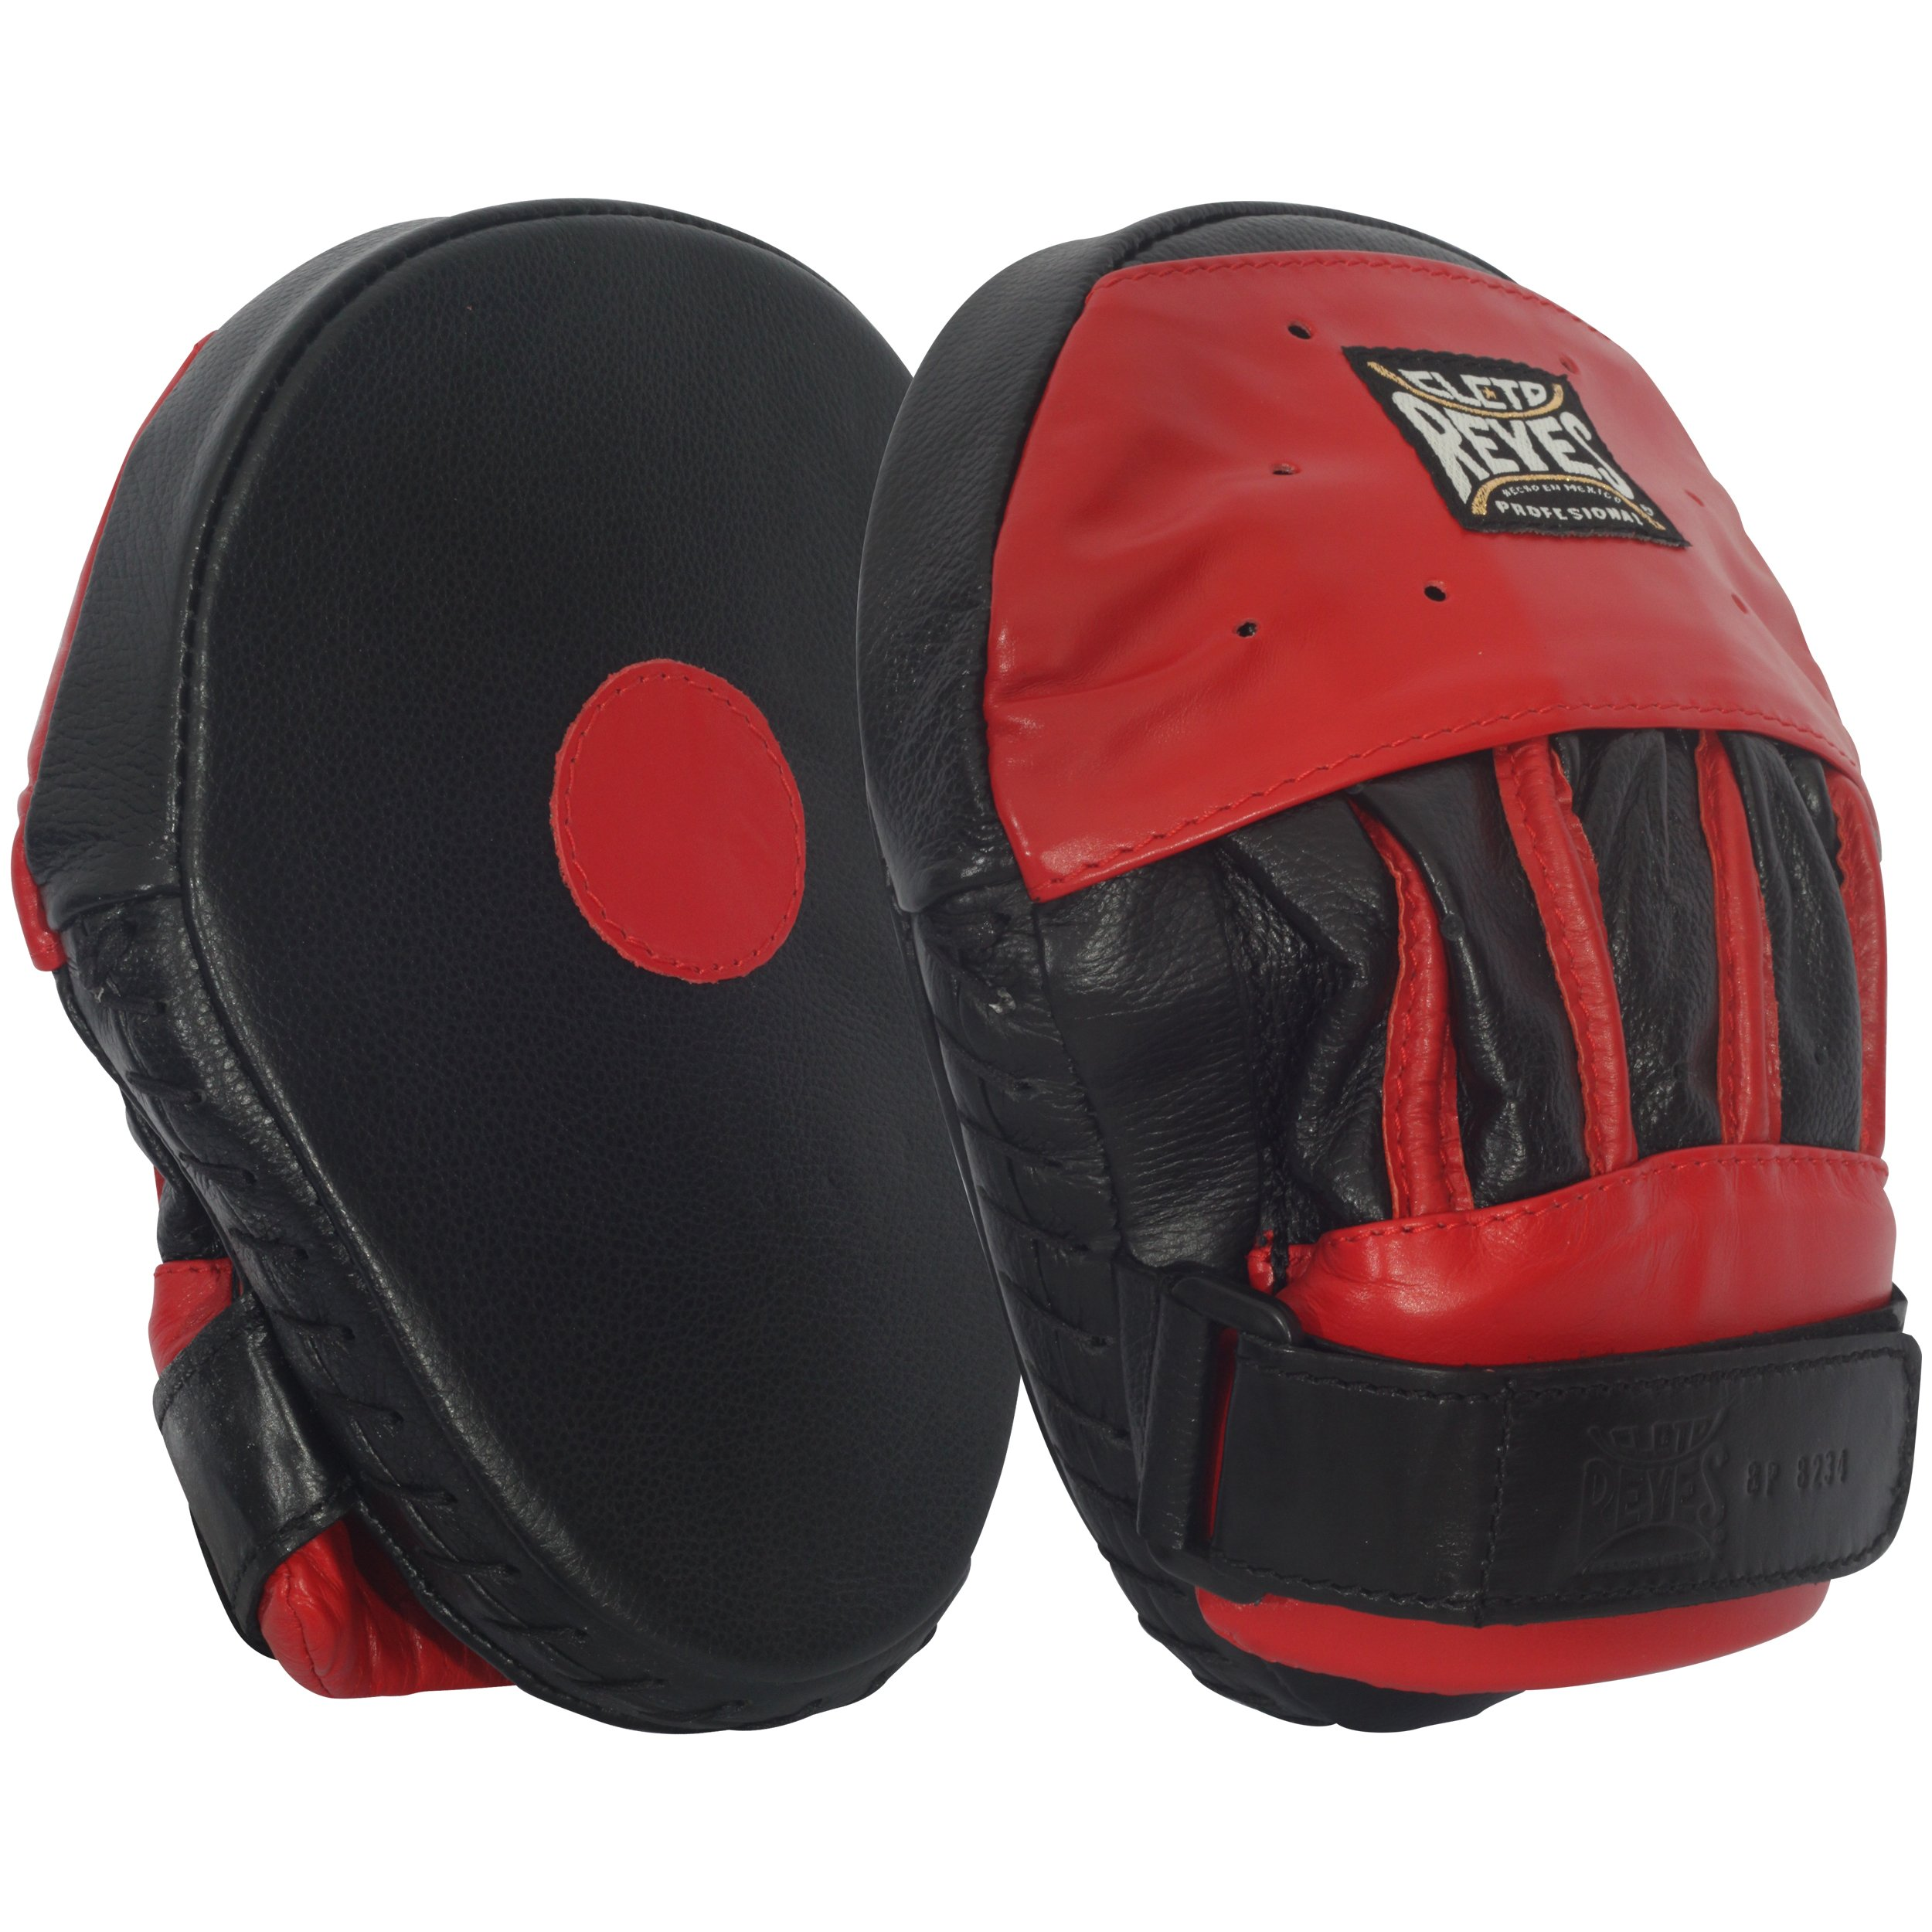 Ringside Cleto Reyes Curved Punch Mitts, One size by Ringside